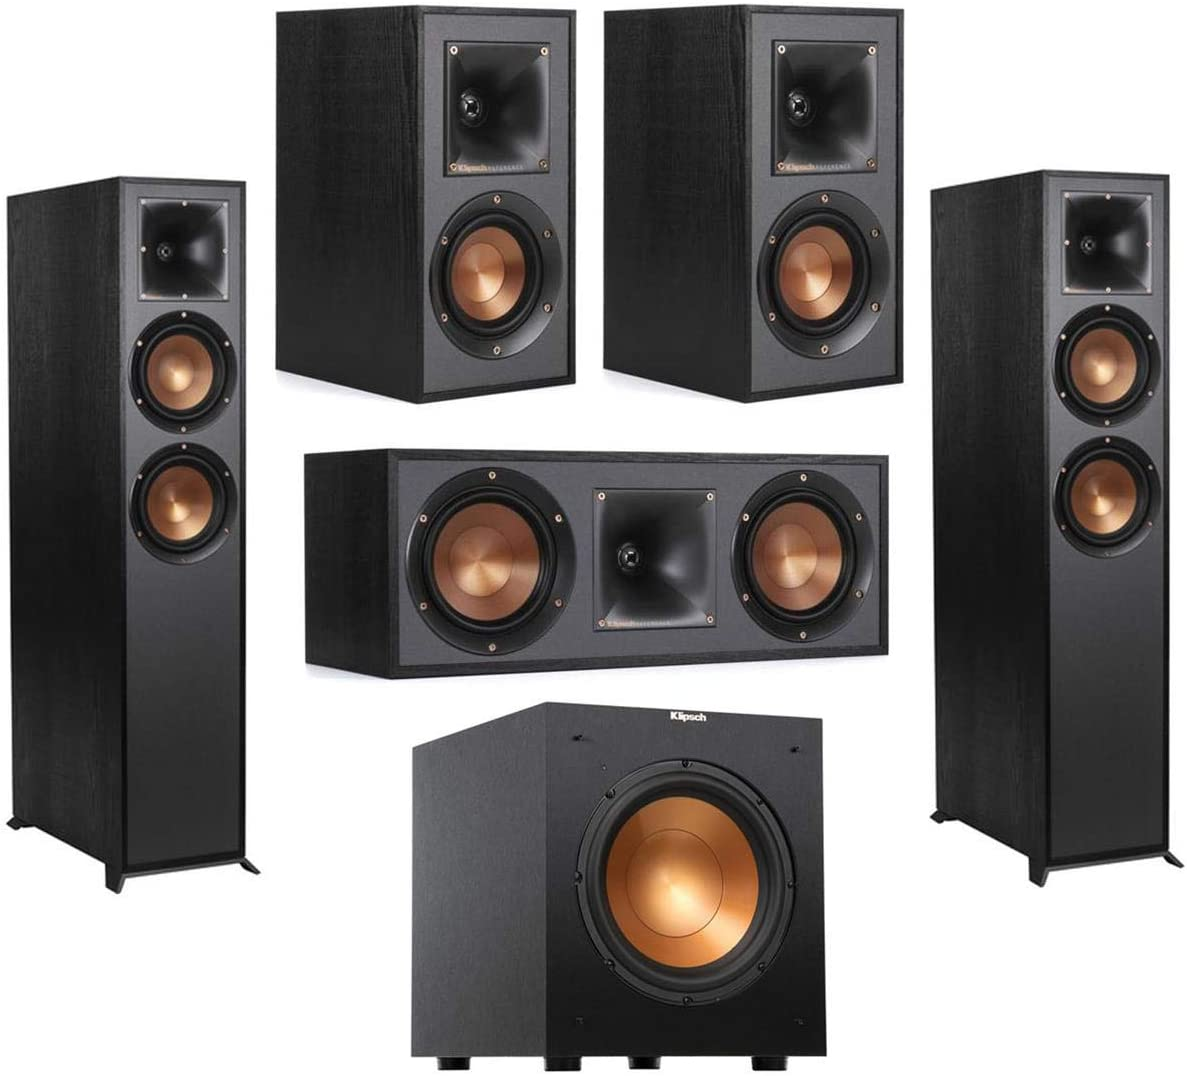 Klipsch 2 Pack R-625FA Dolby Atmos Floor Standing Speaker - Bundle with R-41M Bookshelf Home Speakers, R-52C Center Channel Home Speaker, Reference R-10SW 10